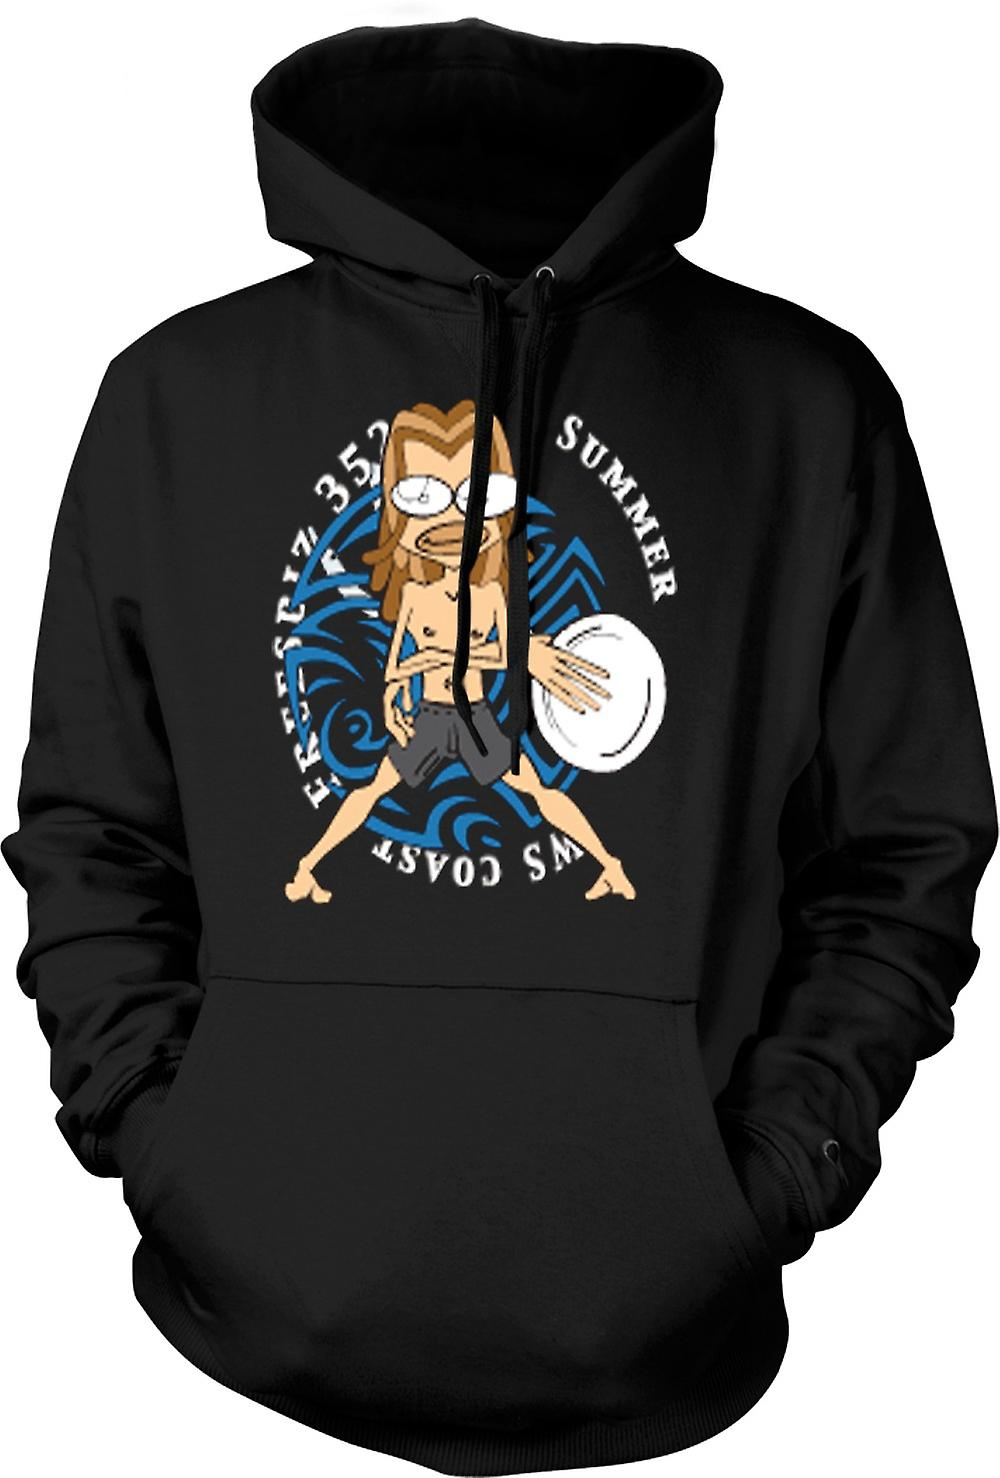 Mens Hoodie - Surf Frisbee Plage Conception tribale